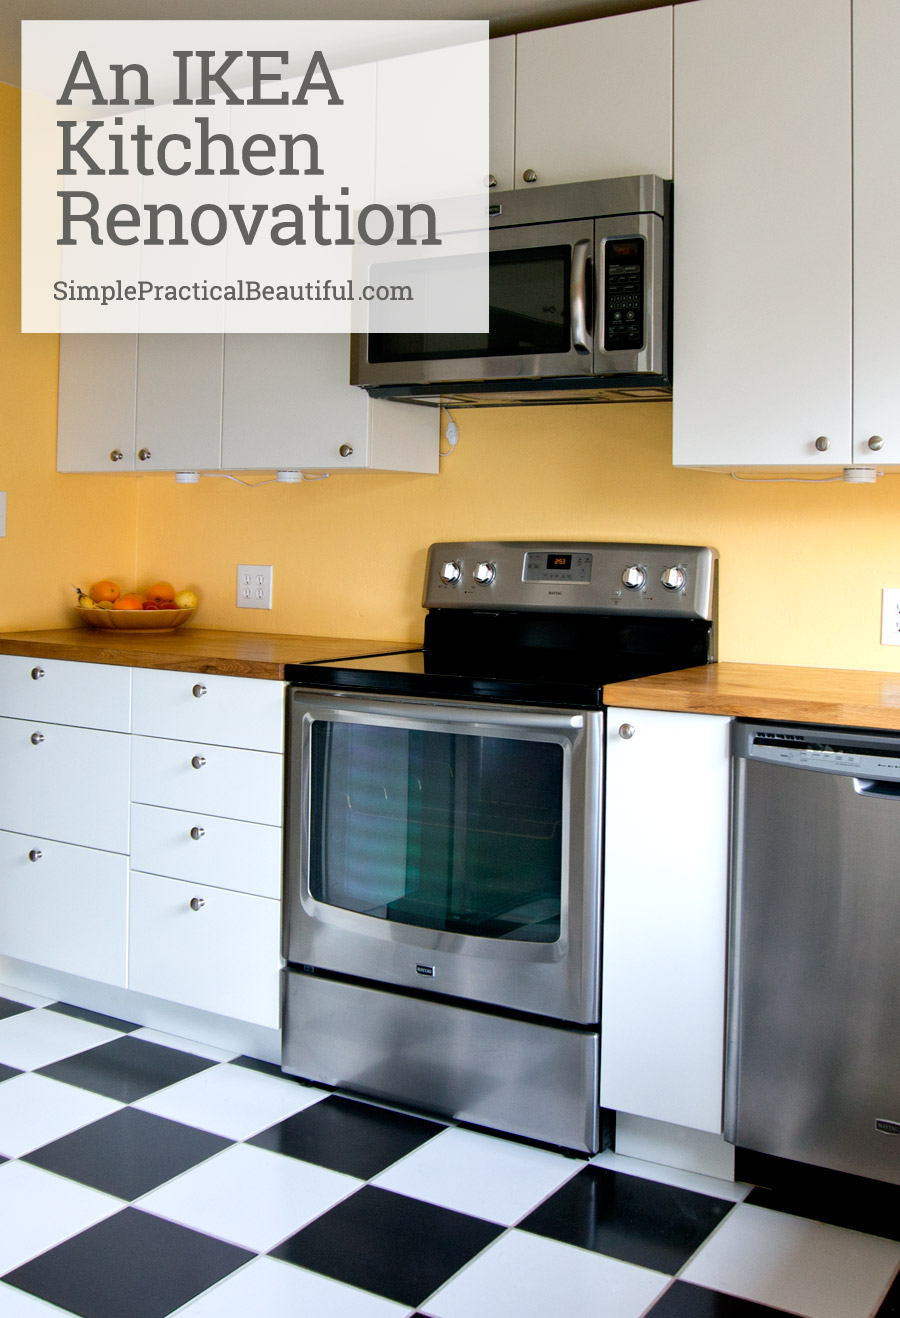 A great DIY IKEA kitchen remodel with a few custom parts. Lots of tips on how they did it.